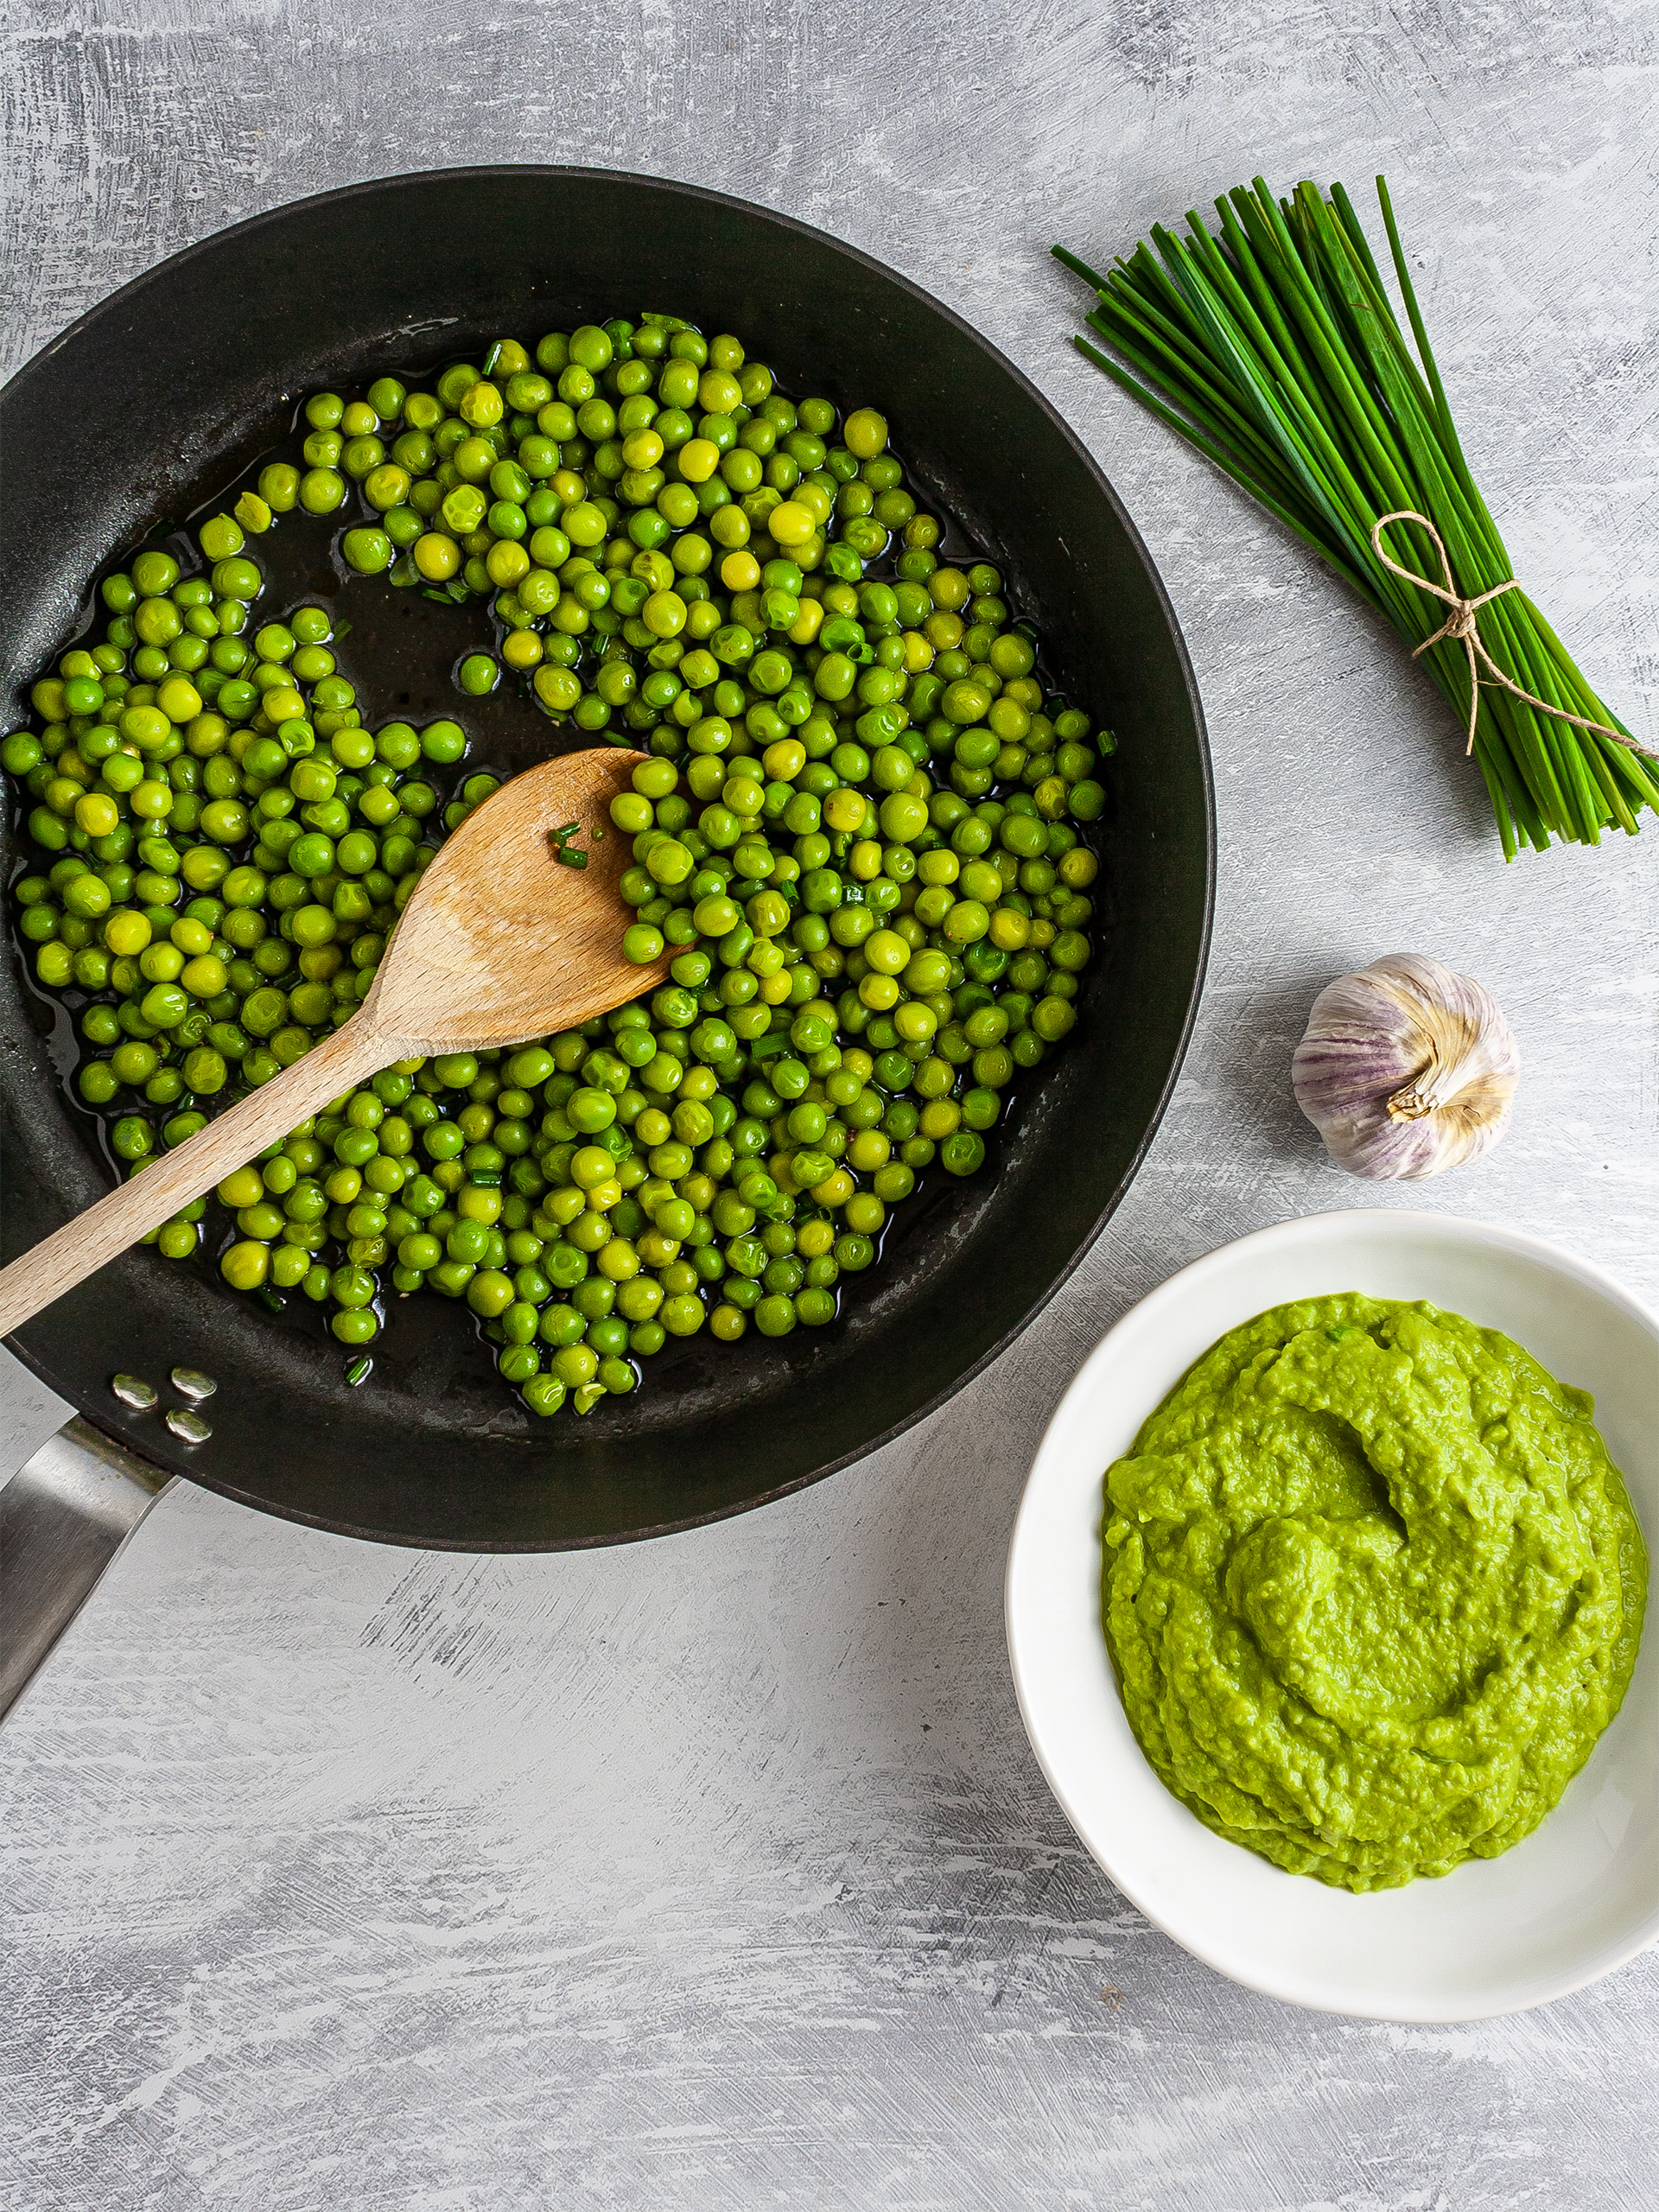 Cooked peas and mashed peas